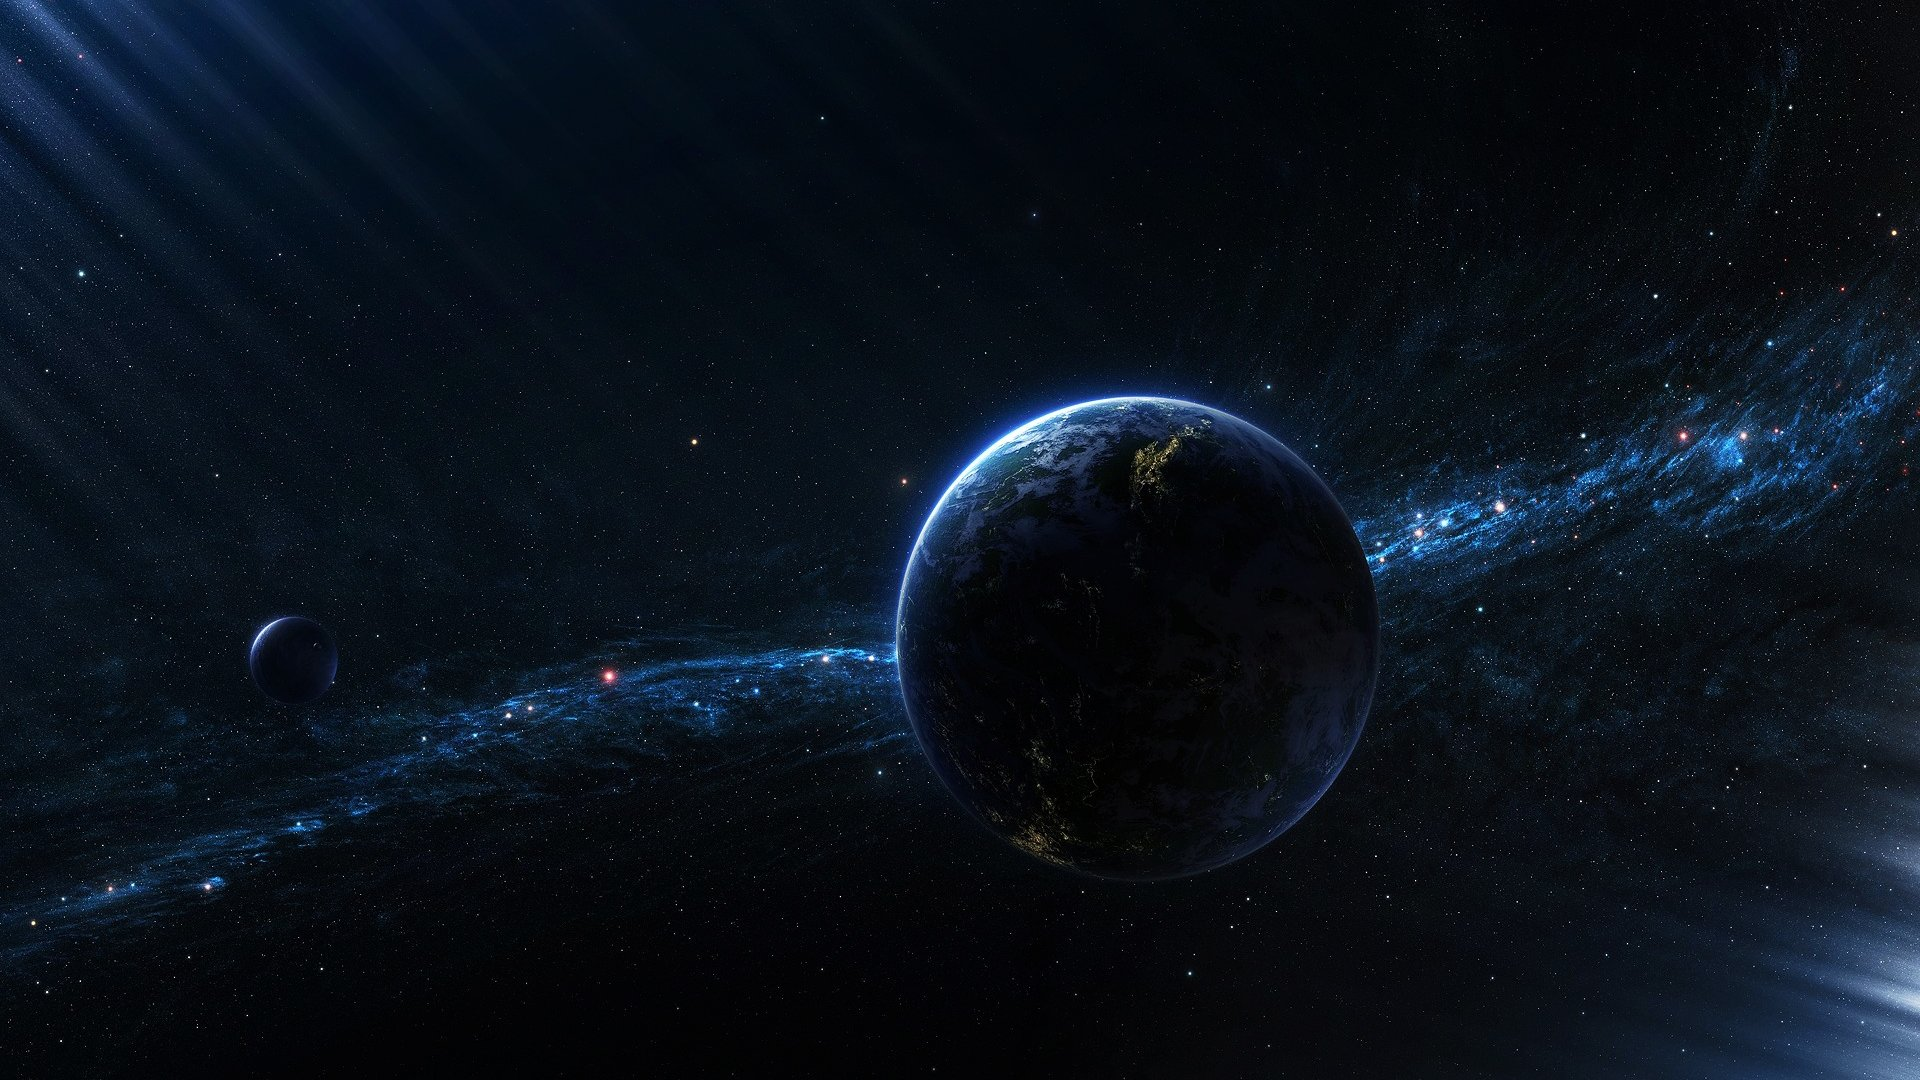 Space HD wallpaper 1920x1080 32   hebusorg   High Definition 1920x1080